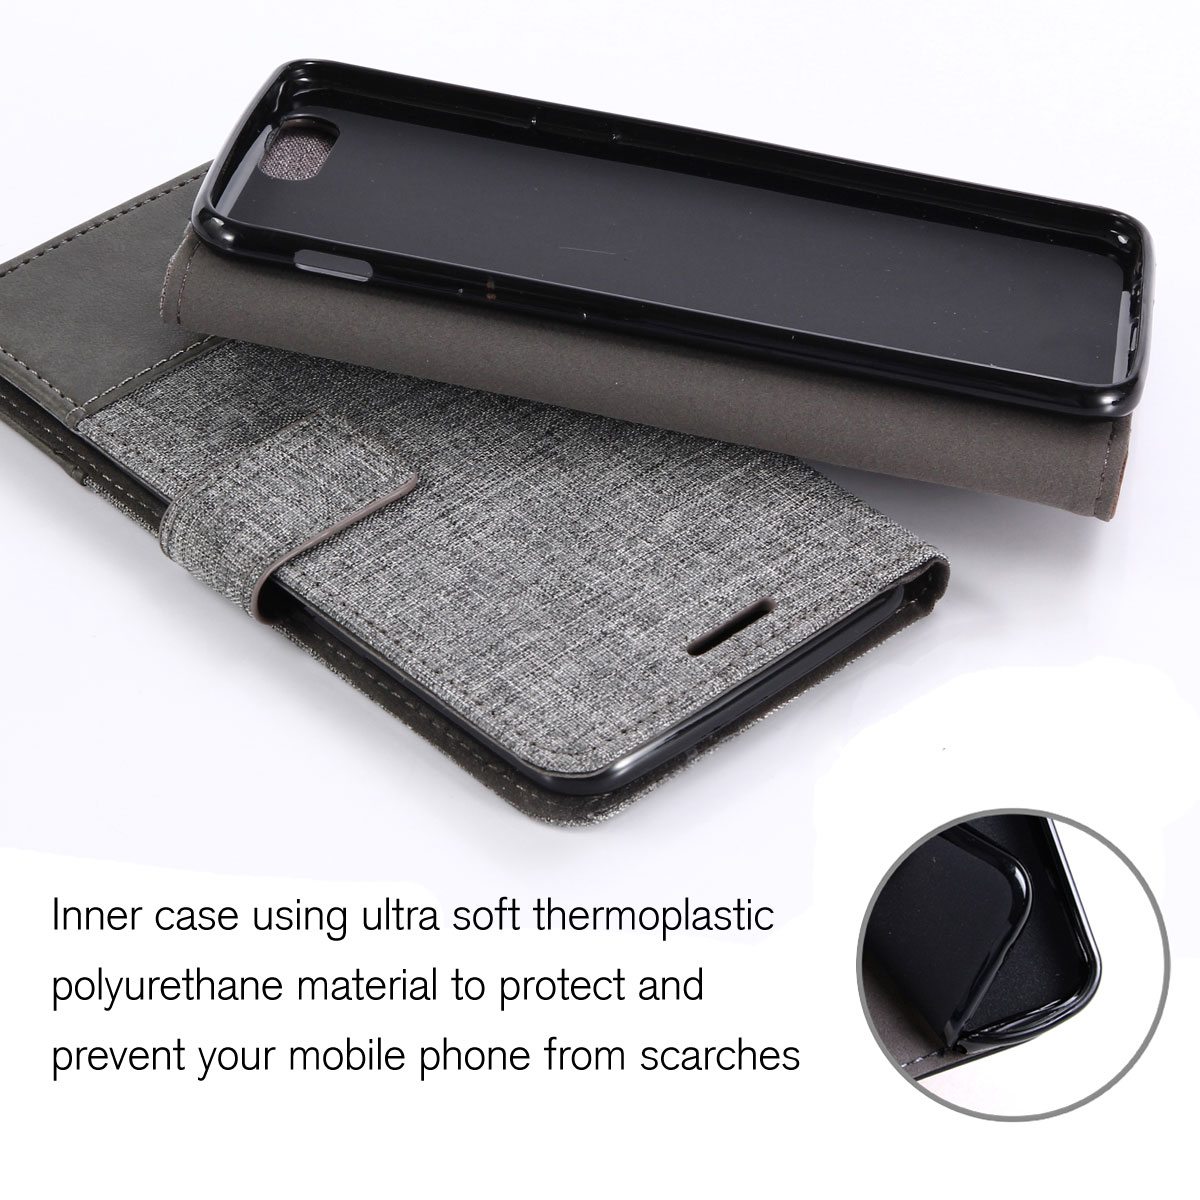 buy online bdc1b 7cf42 Details about For Oneplus 3 / 3T Card Wallet Flip Canvas Shockproof Hybrid  Magnetic Case Cover